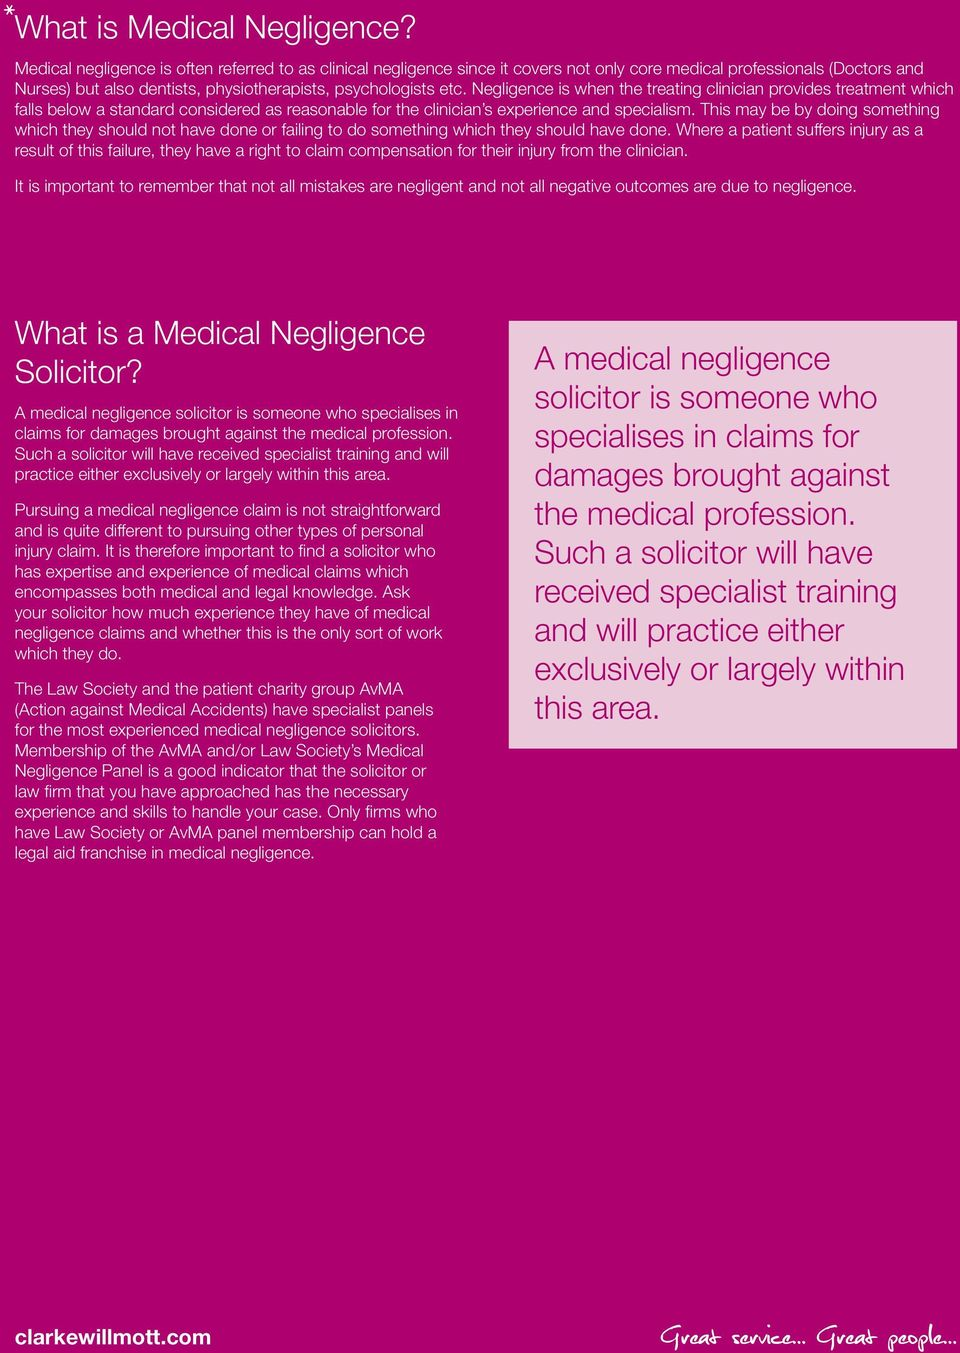 Negligence is when the treating clinician provides treatment which falls below a standard considered as reasonable for the clinician s experience and specialism.